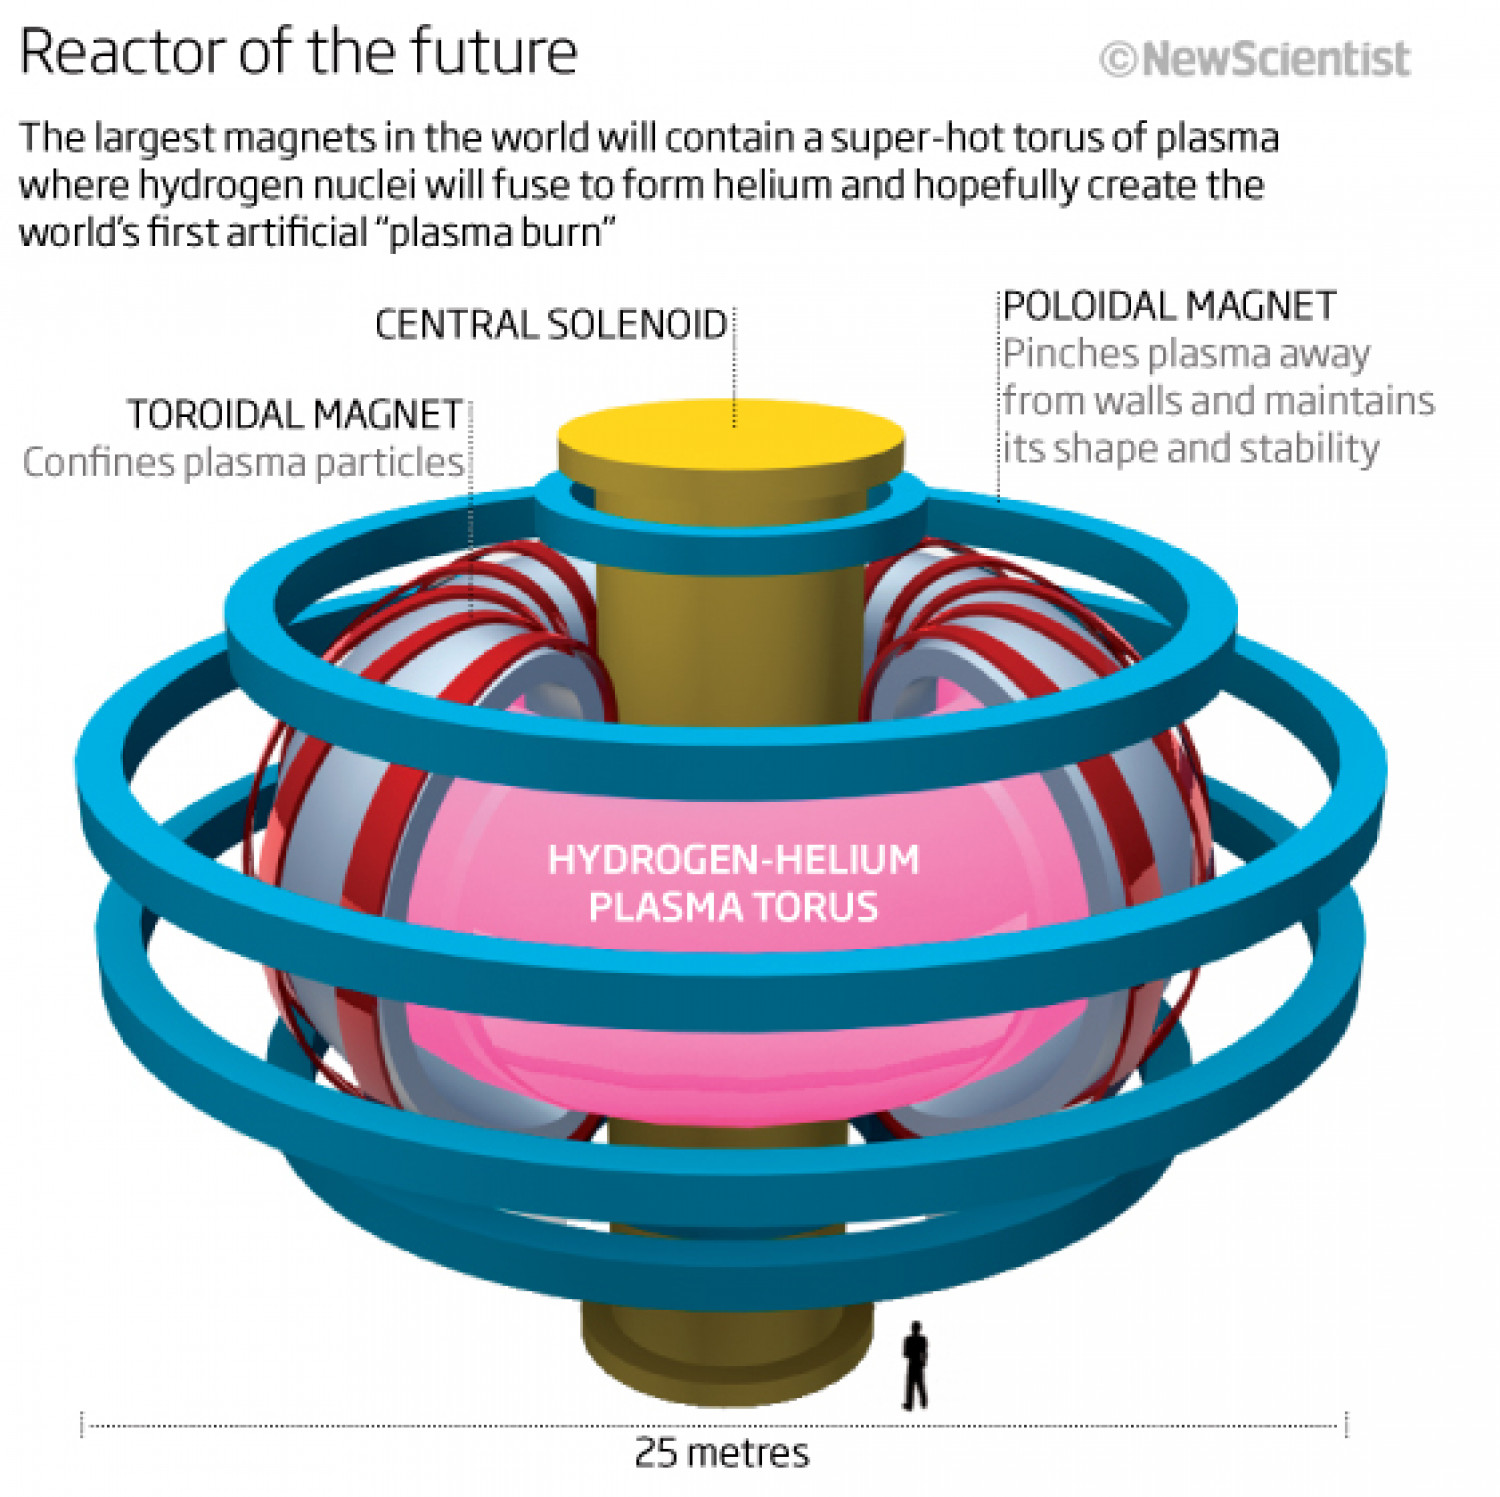 Reactor of the future Infographic